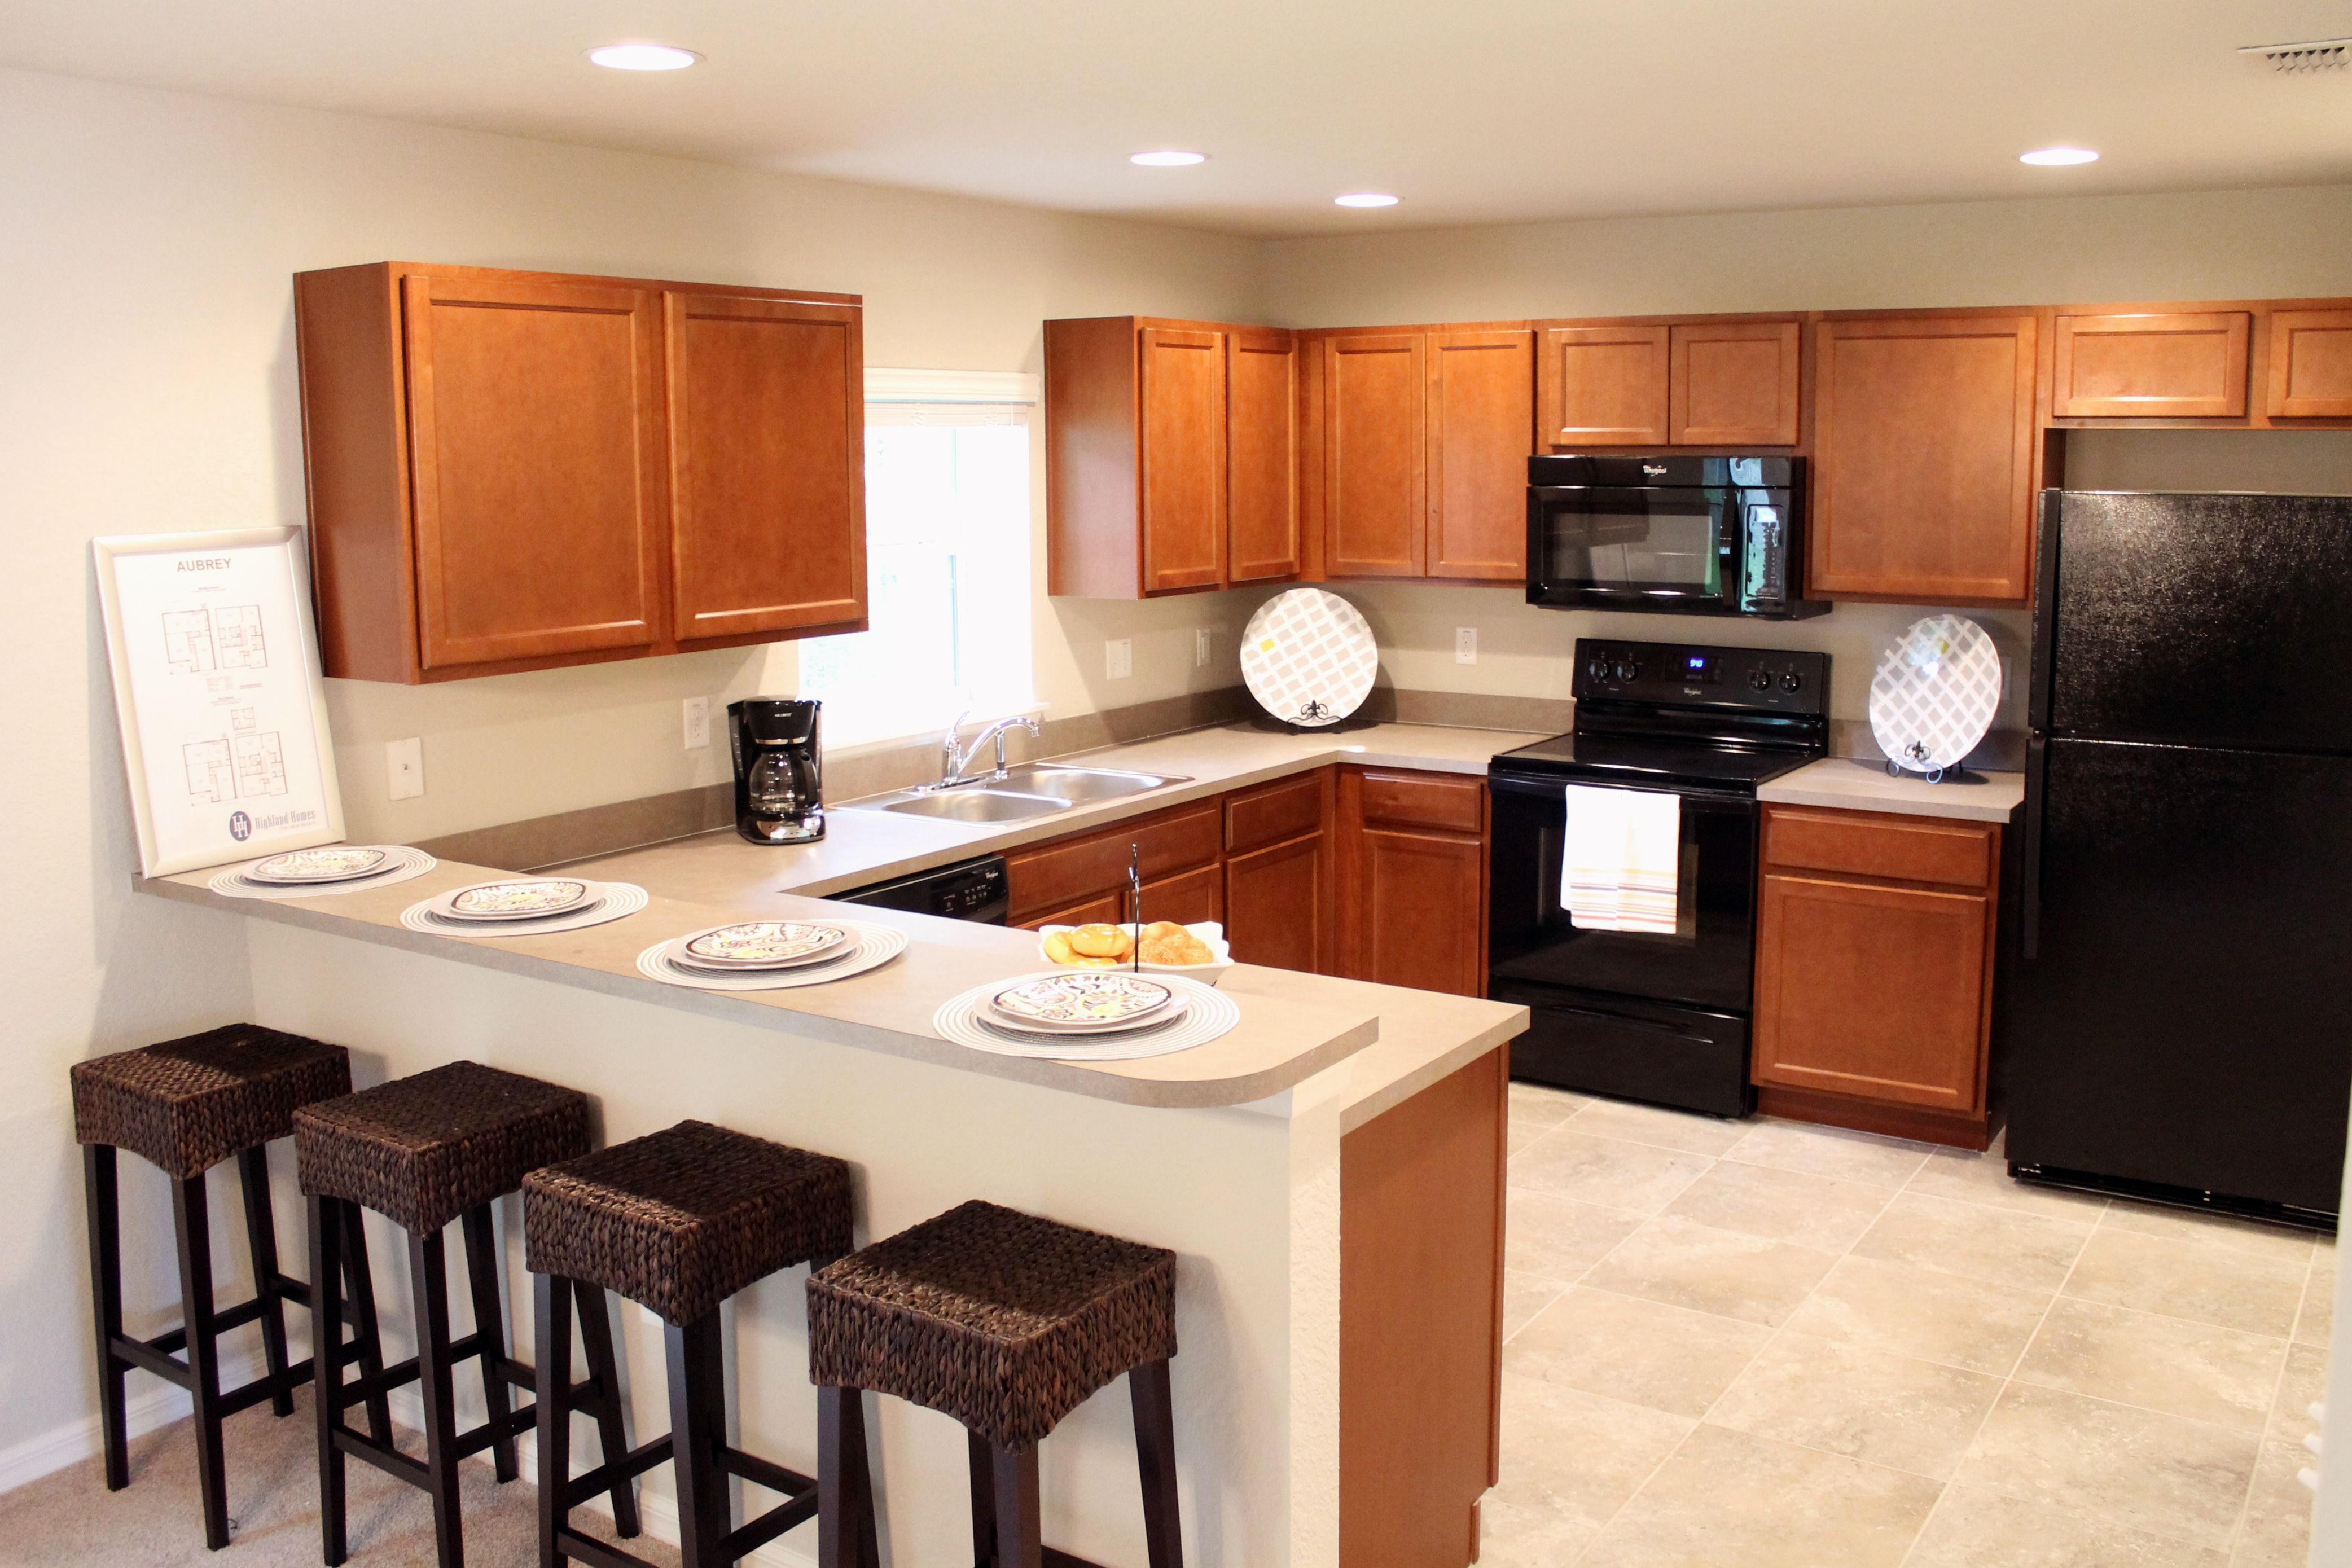 Kitchen Space What A Great Kitchen Space Open And Roomy Cooking And